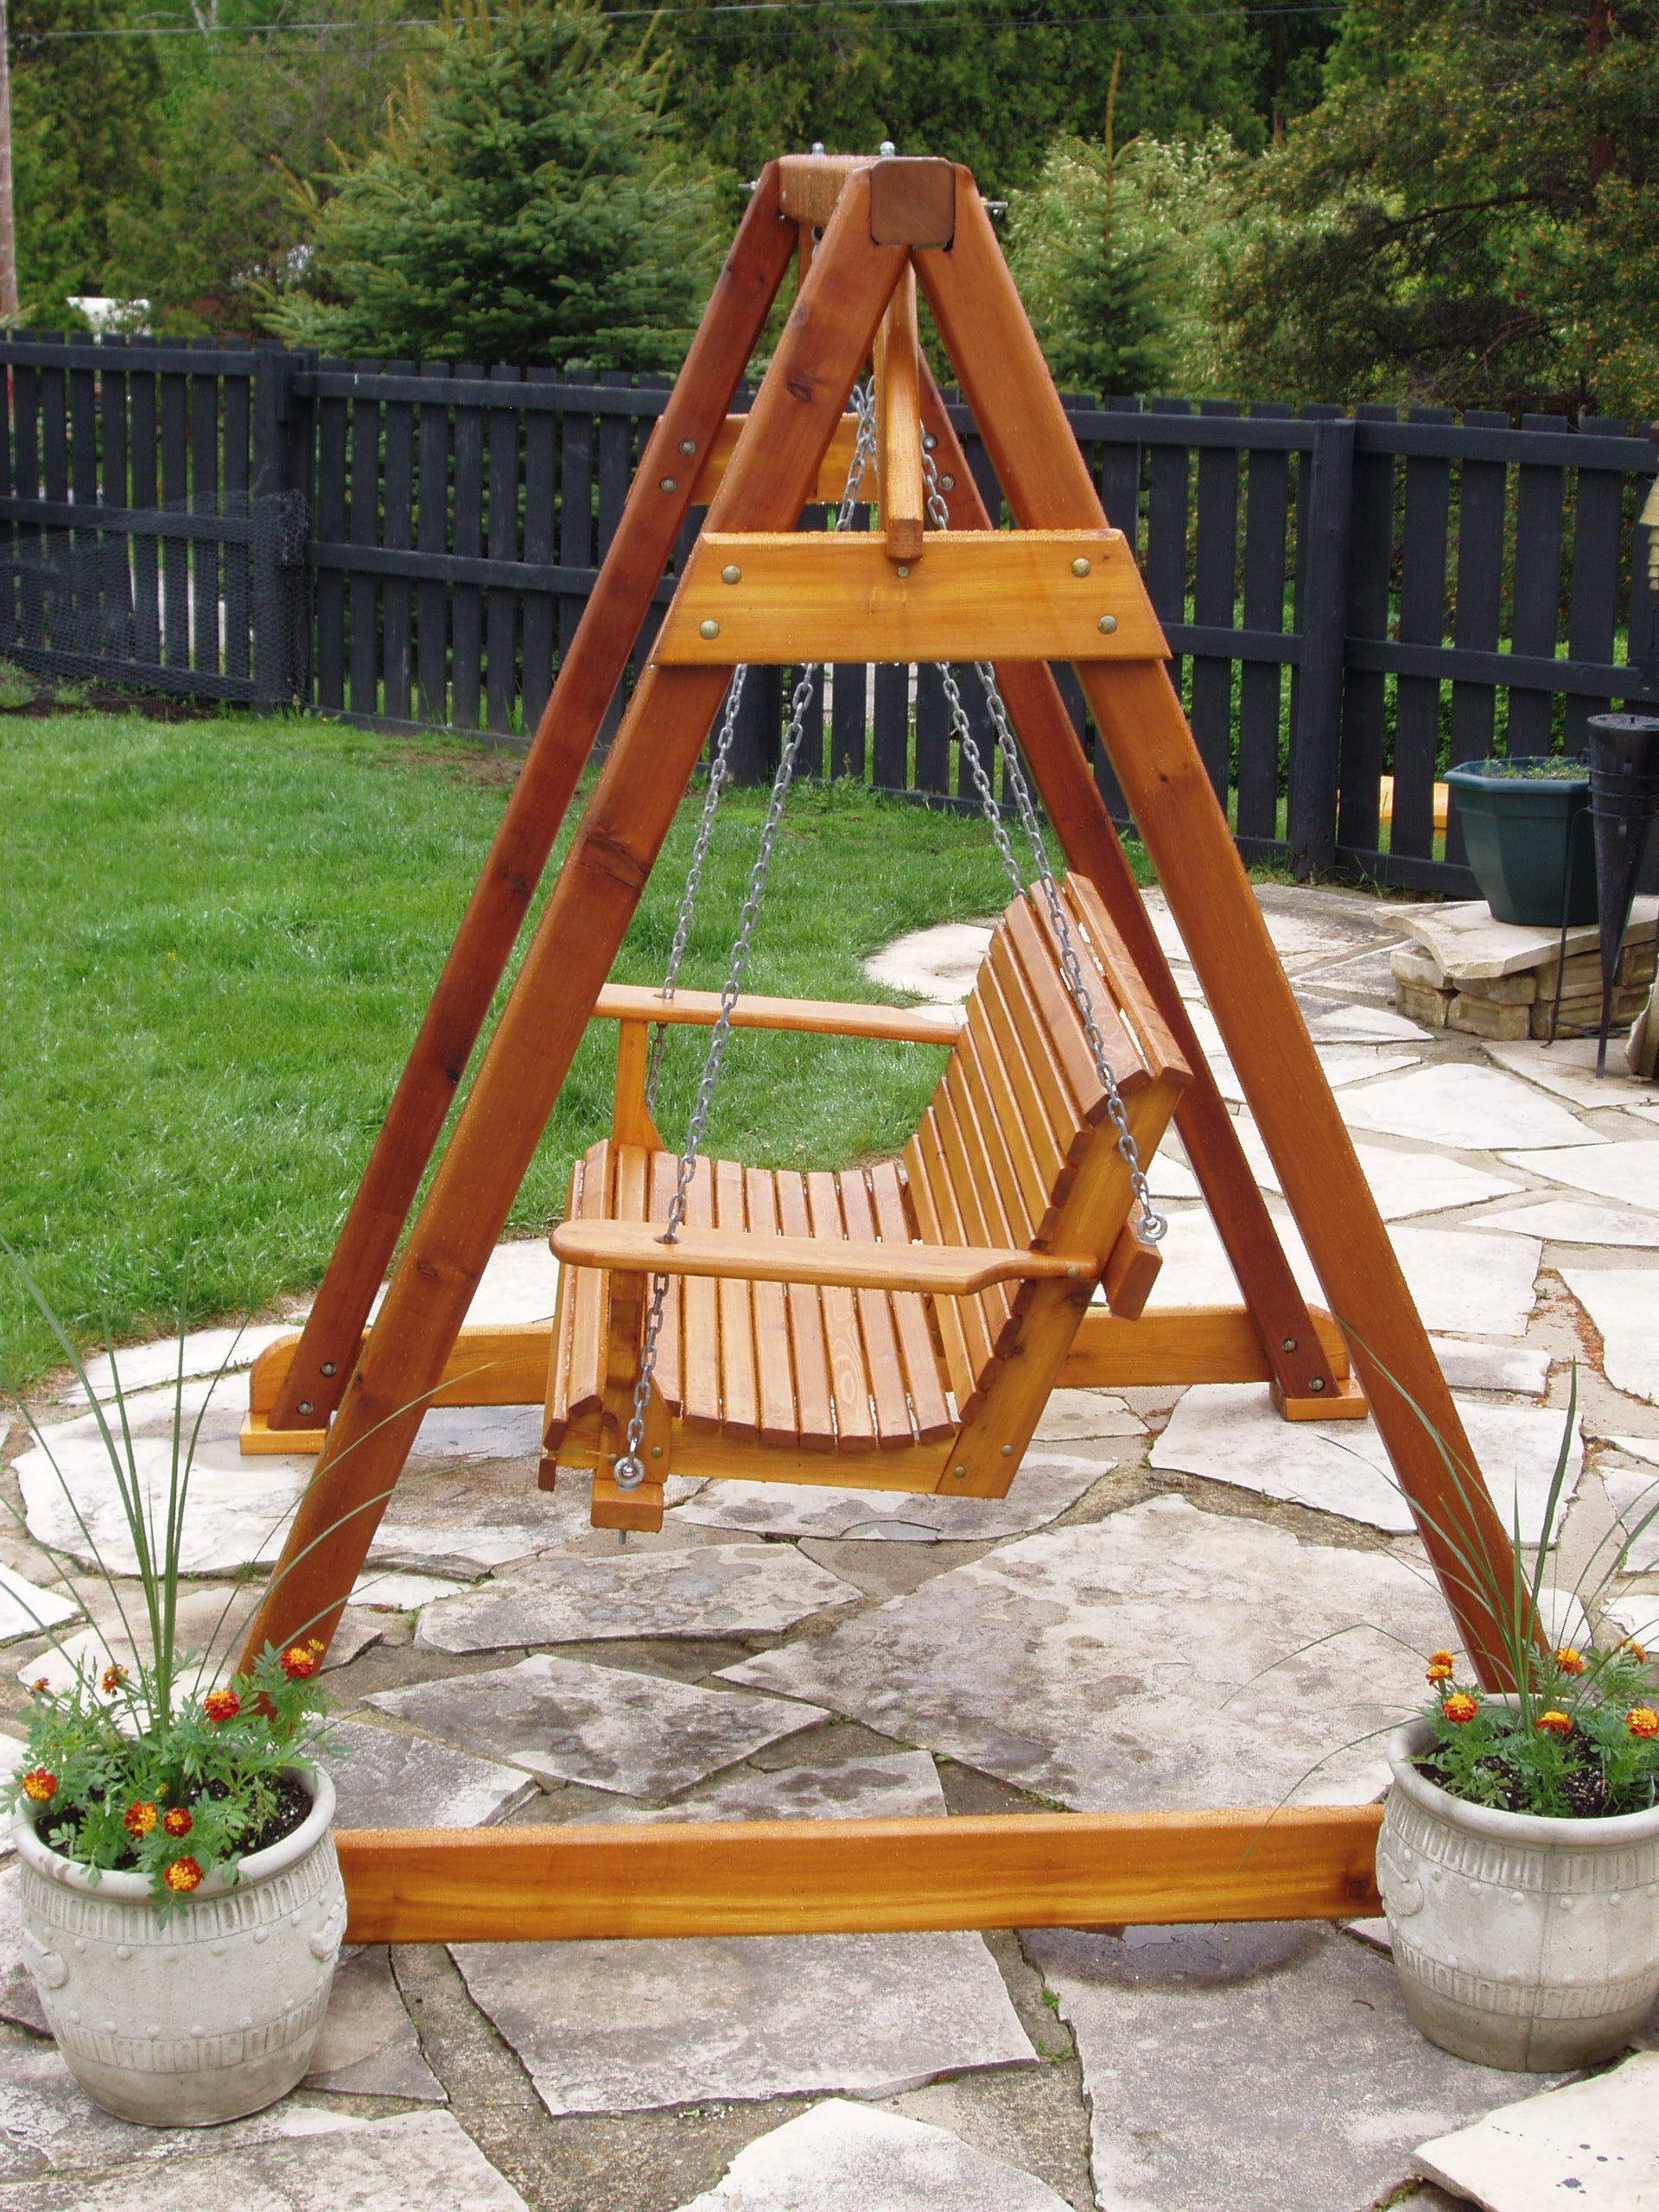 2020 Porch Swings With Stand Intended For Build Diy How To Build A Frame Porch Swing Stand Pdf Plans (View 6 of 25)